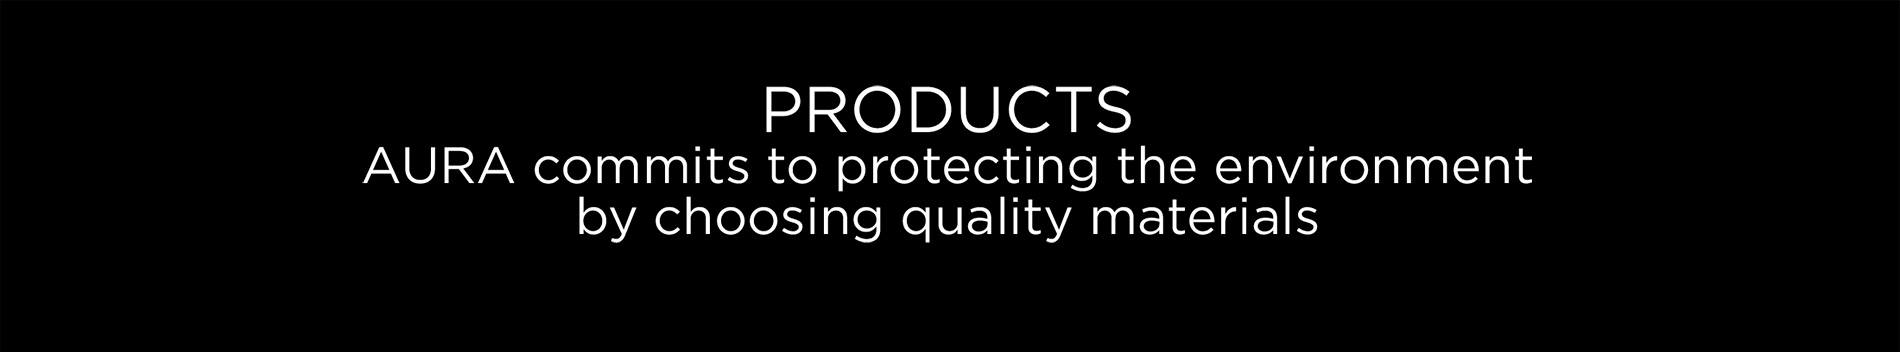 PRODUCTS. AURA commits to protecting the environment by choosing quality materials